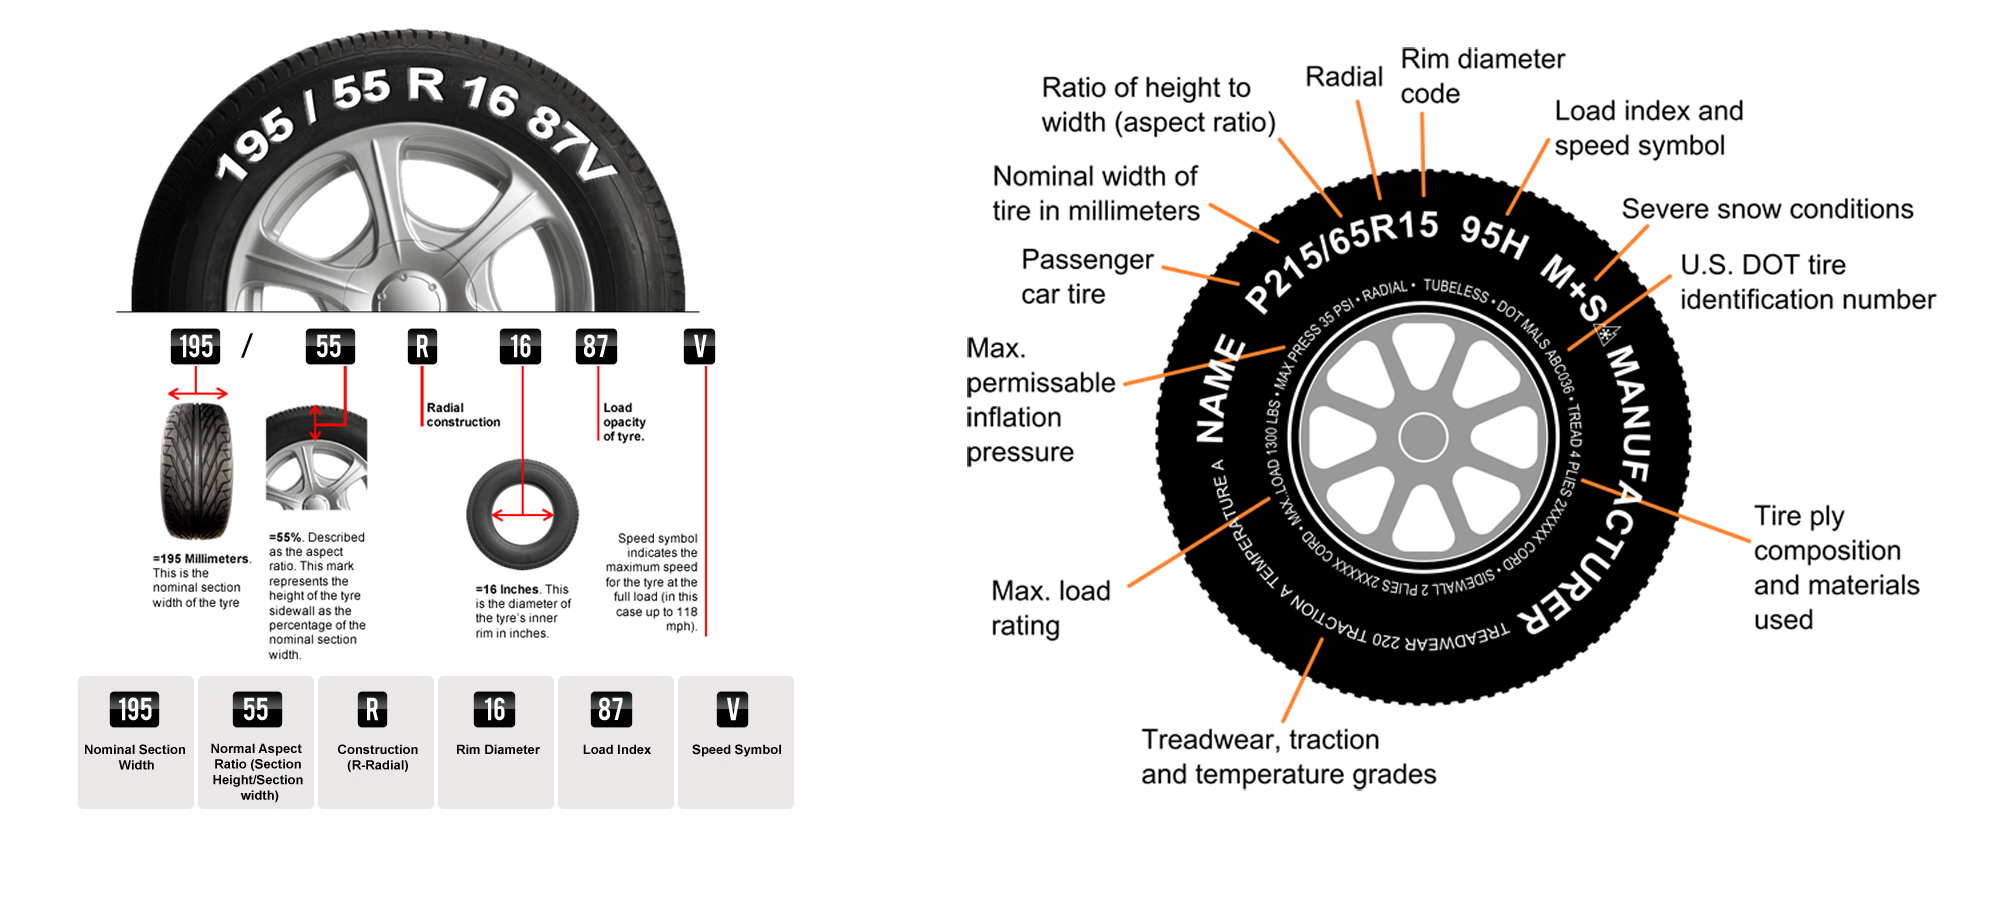 tire and ply ra ting Trailer tires, bias ply & radial for, rv's, campers, fifth wheels free shipping over $50 load range of the tire - air pressure rating and load capacity.